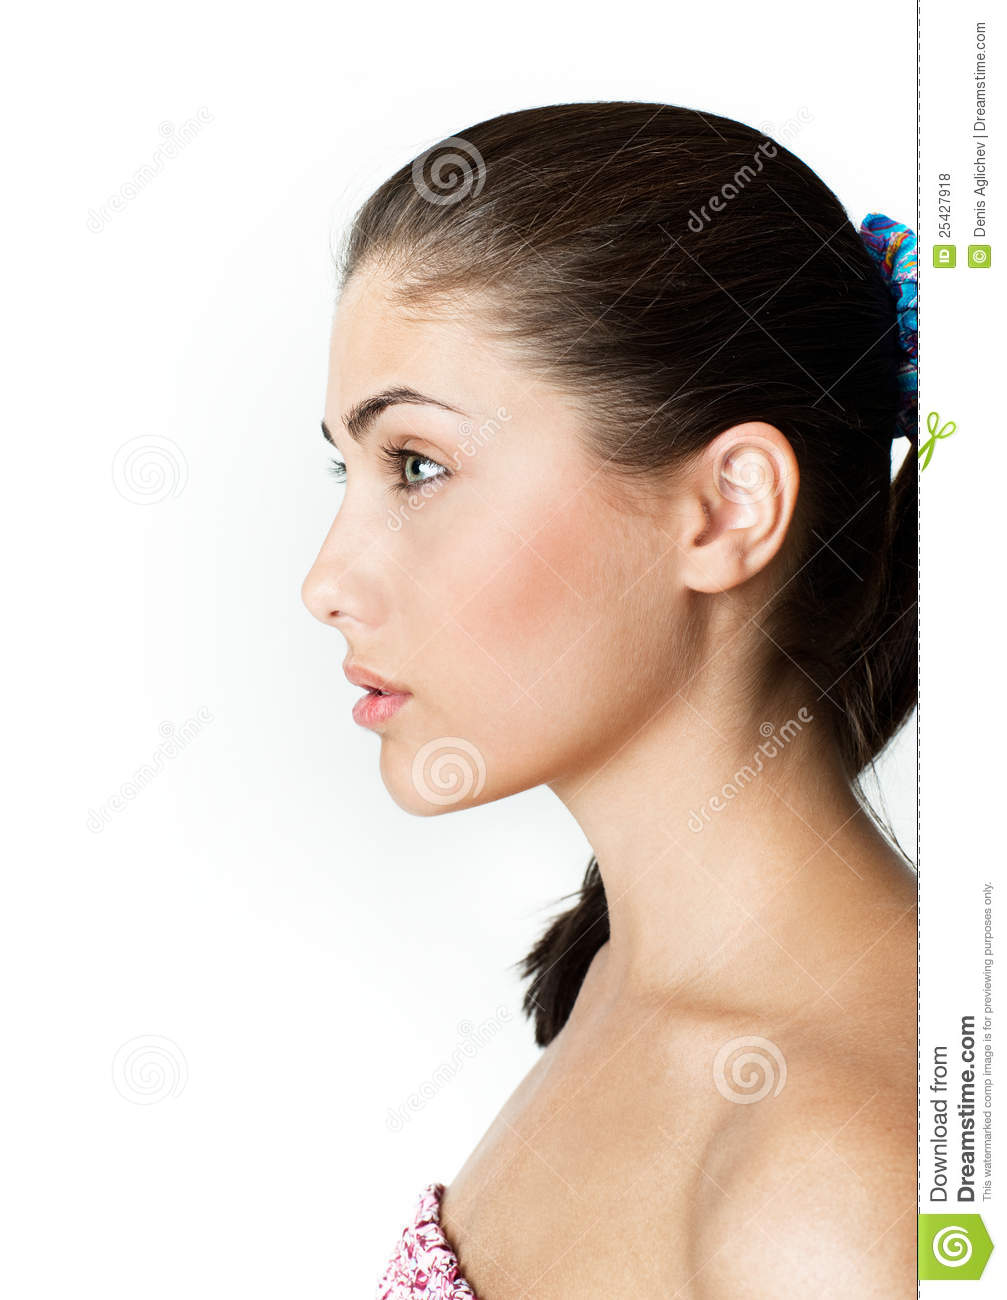 Royalty Free Stock Photos Girl In Profile Image 25427918